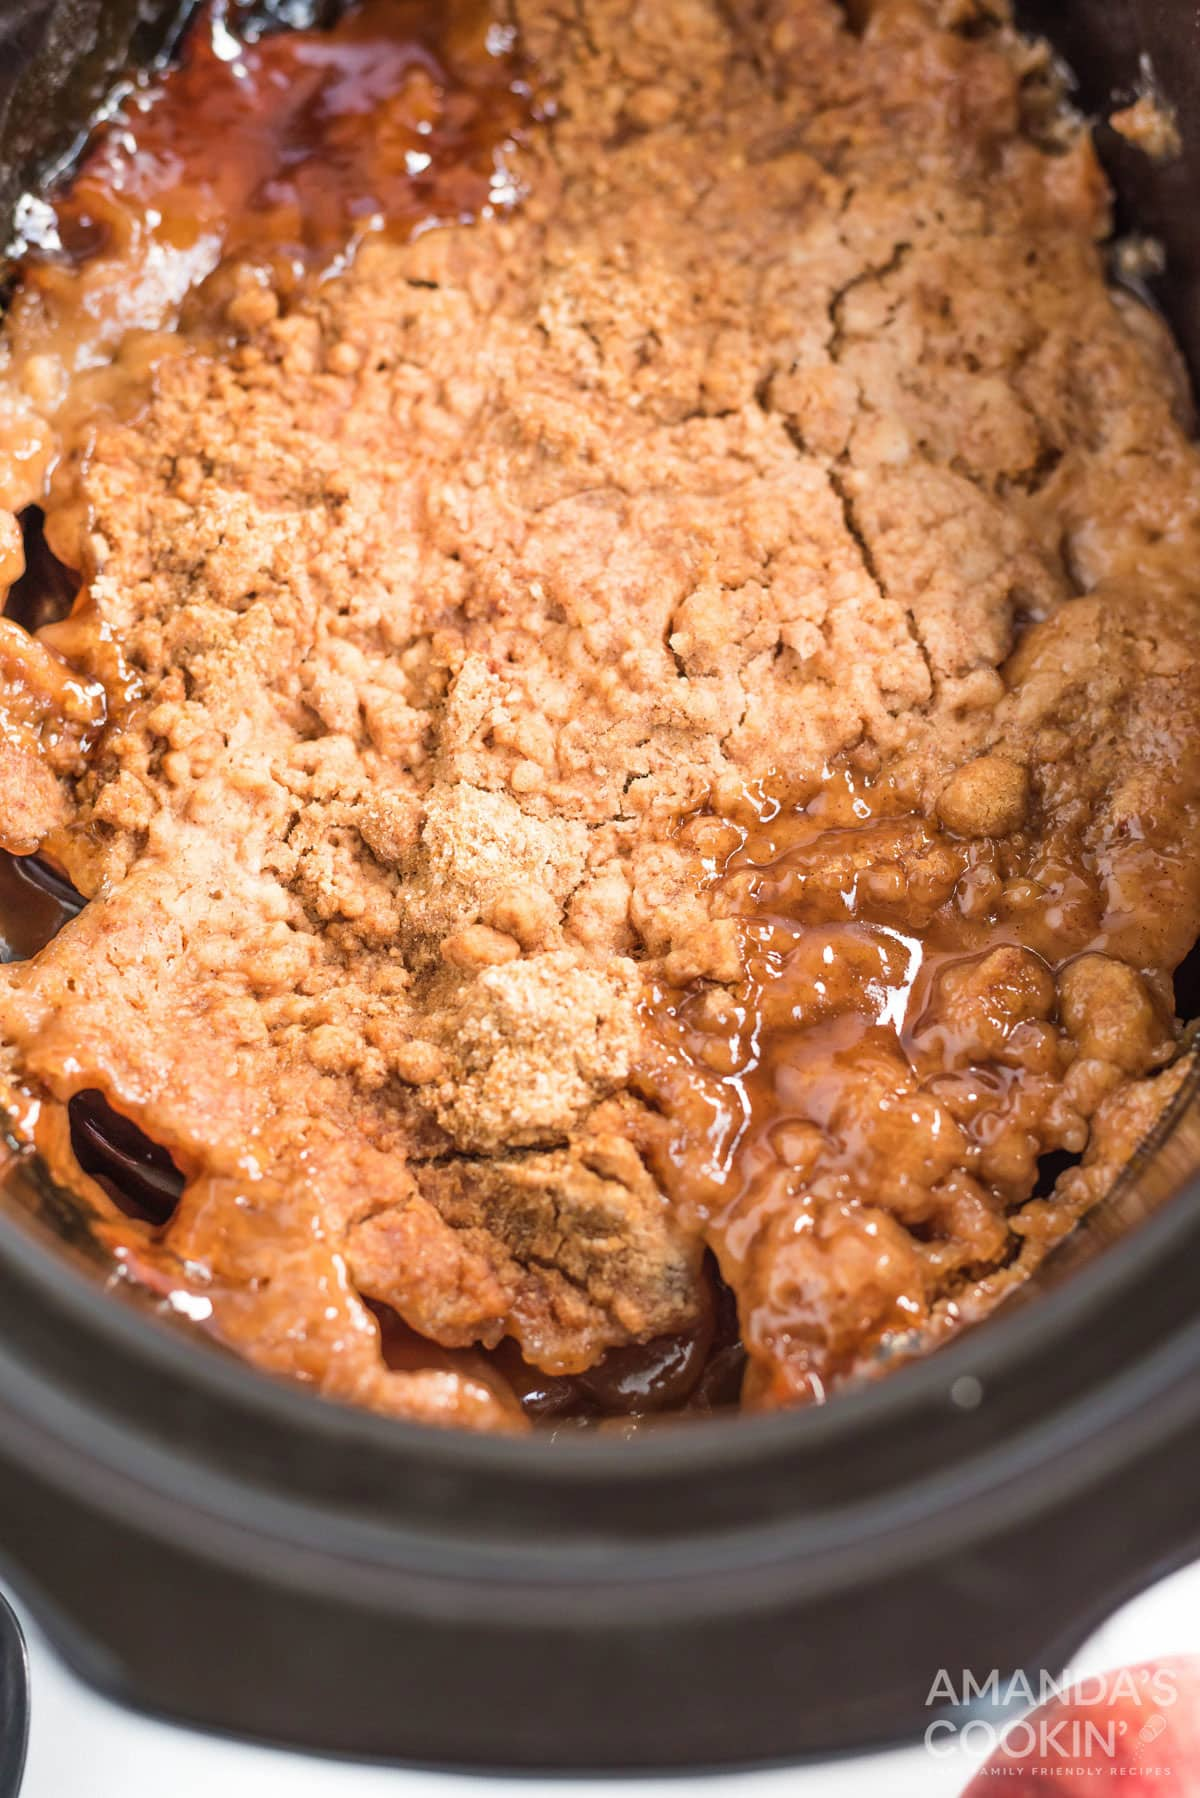 apple dump cake that has been cooked in a crockpot